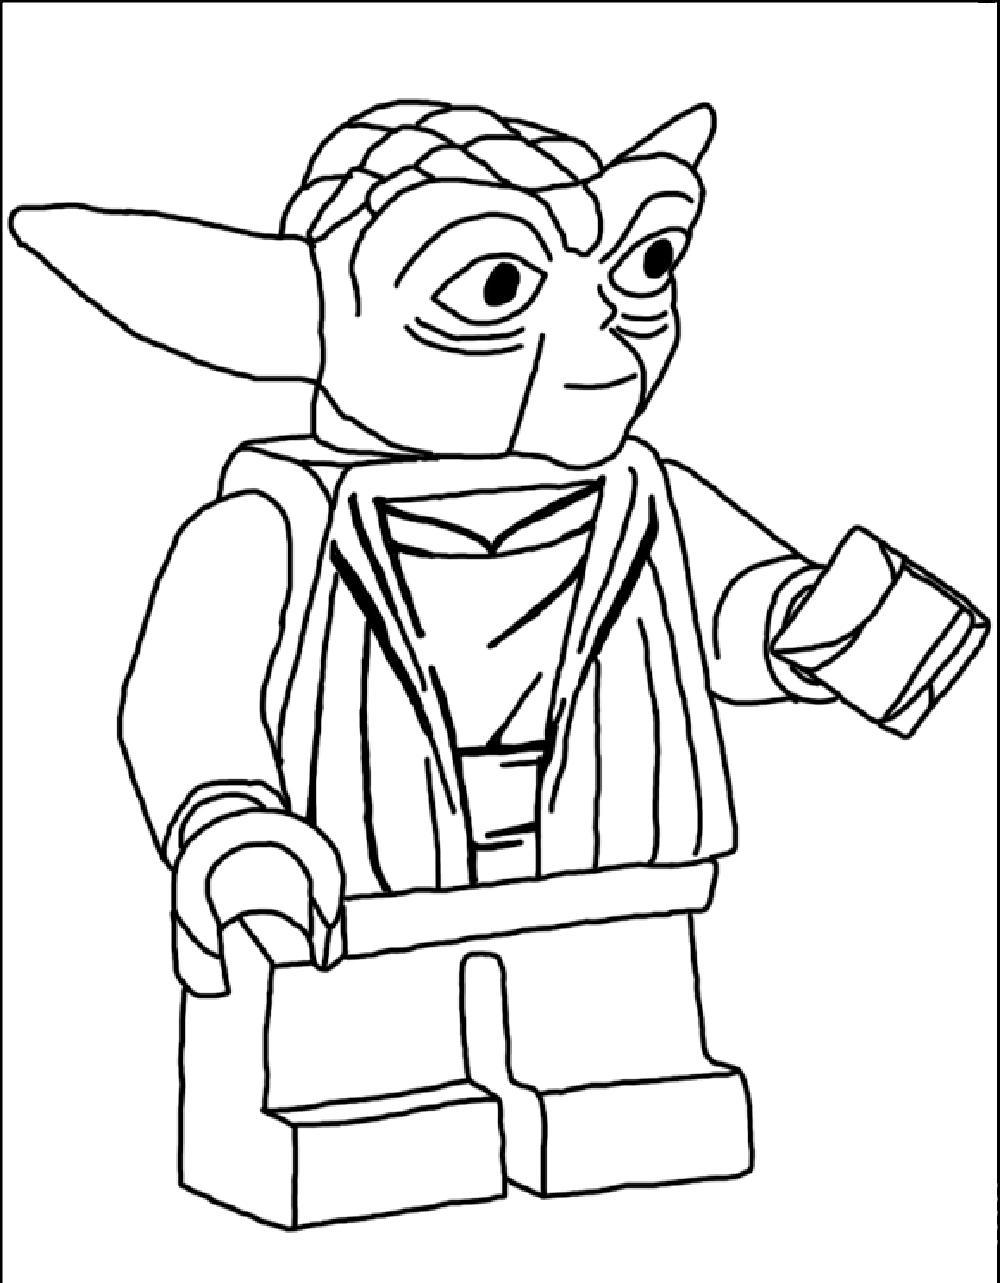 lego colouring in pages create your own lego coloring pages for kids in pages lego colouring